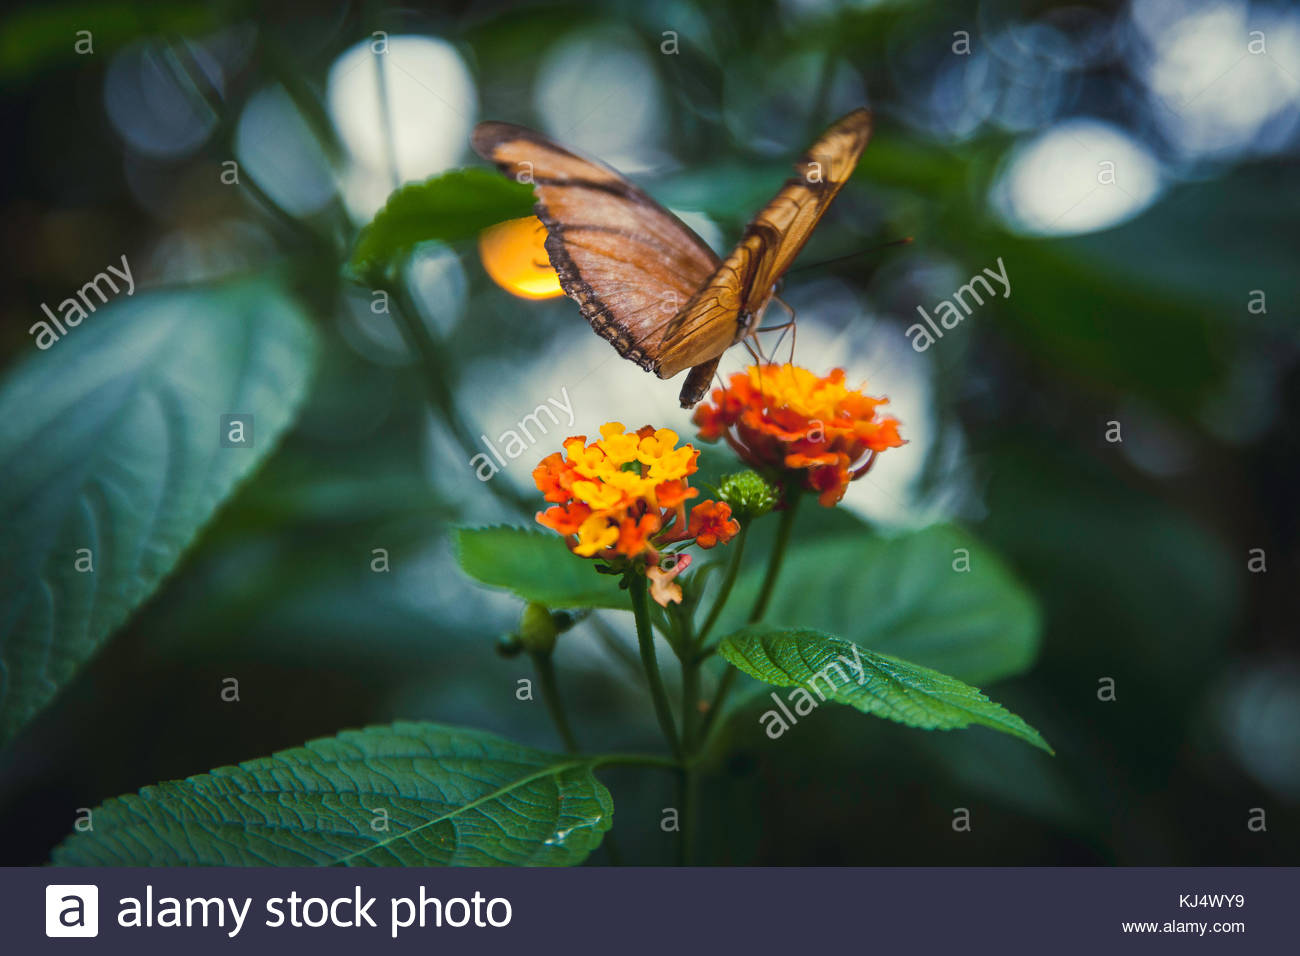 yellow sage plant with butterfly - Stock Image